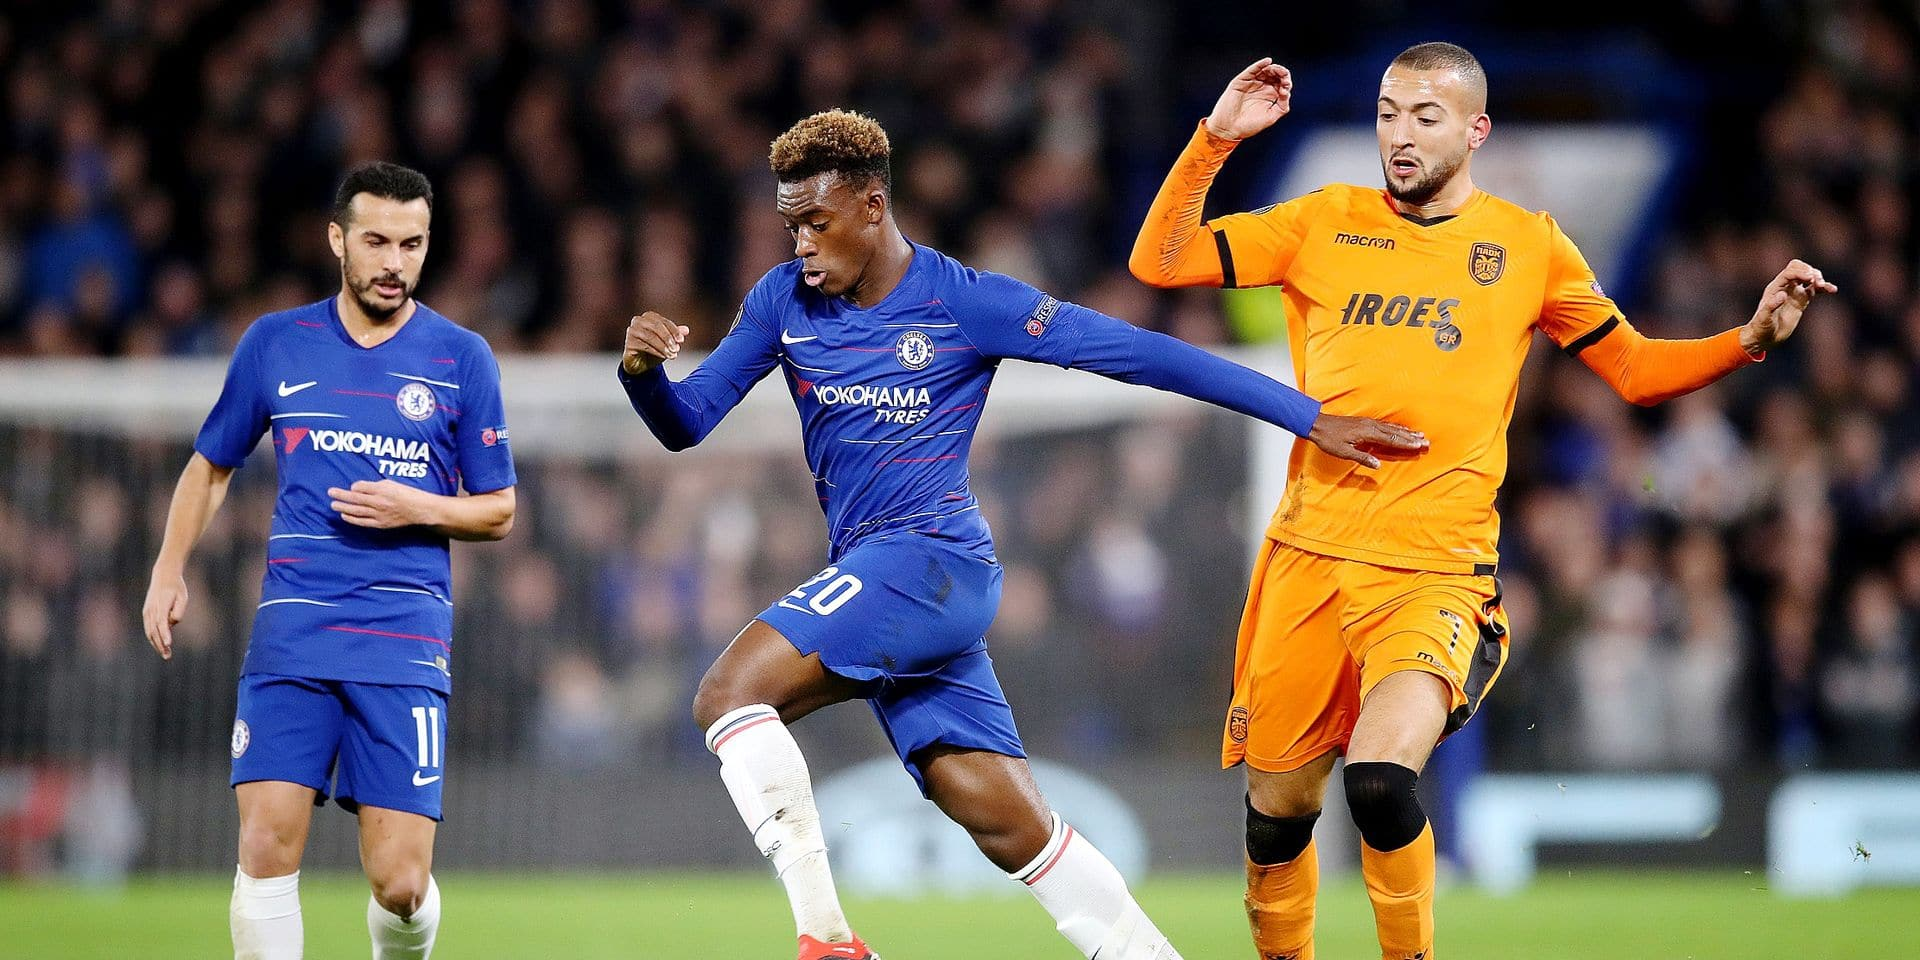 Chelsea's Callum Hudson-Odoi (centre) and PAOK's Omar El Kaddouri (right) battle for the ball during the UEFA Europa League, Group L match at Stamford Bridge, London. ! only BELGIUM !